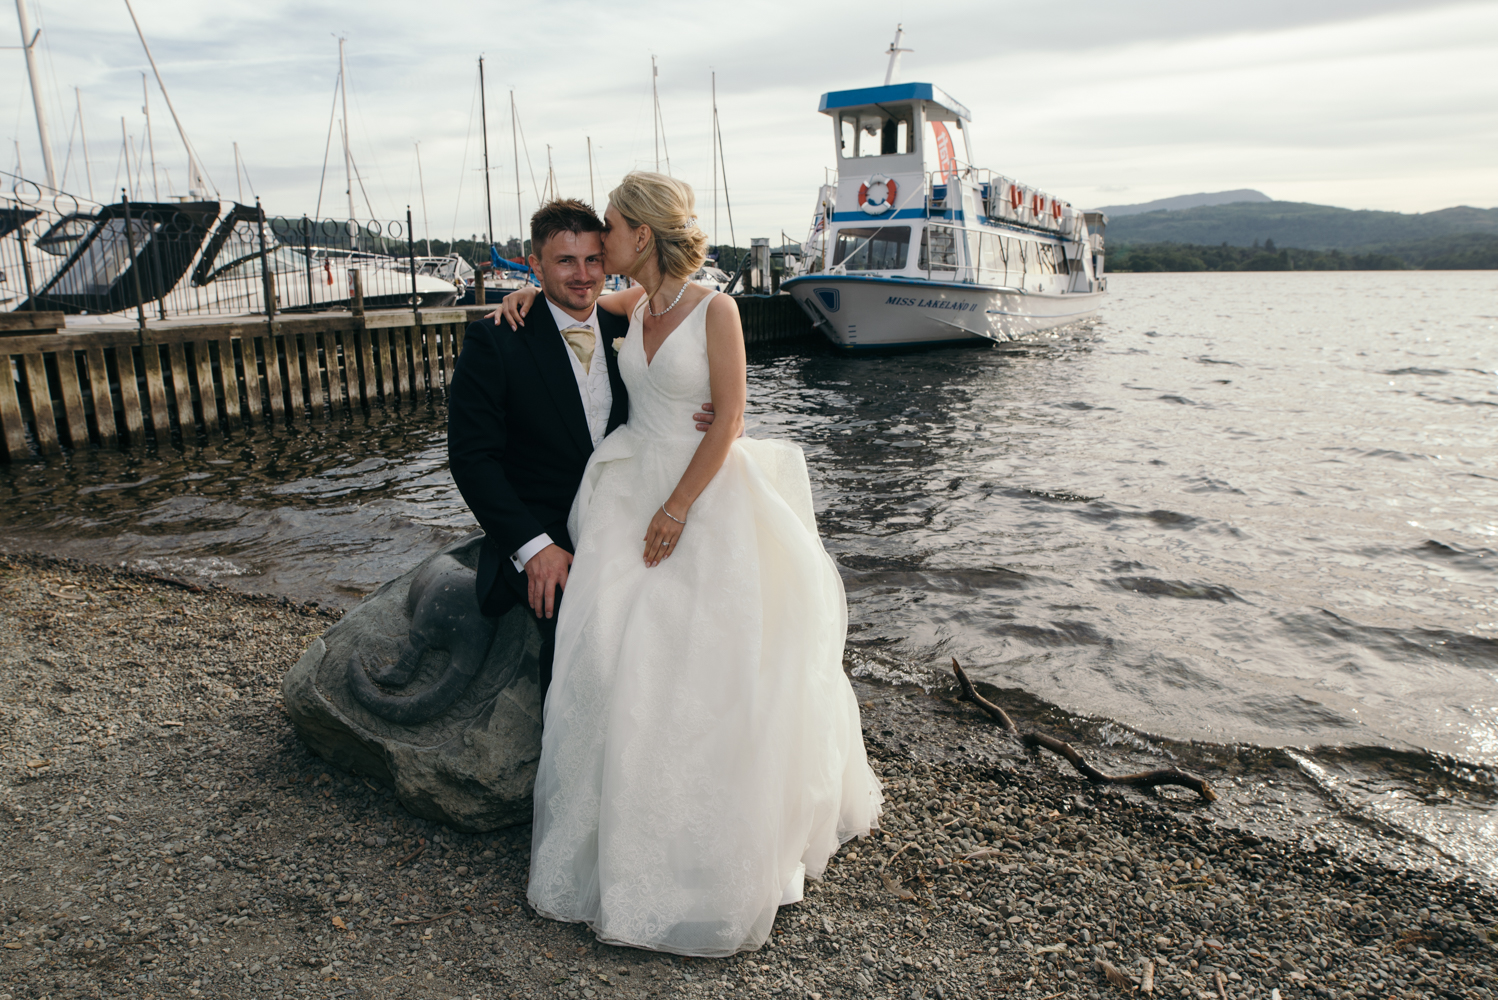 The bride and groom sitting on a commemorative stone by the jetty just after the lake cruise